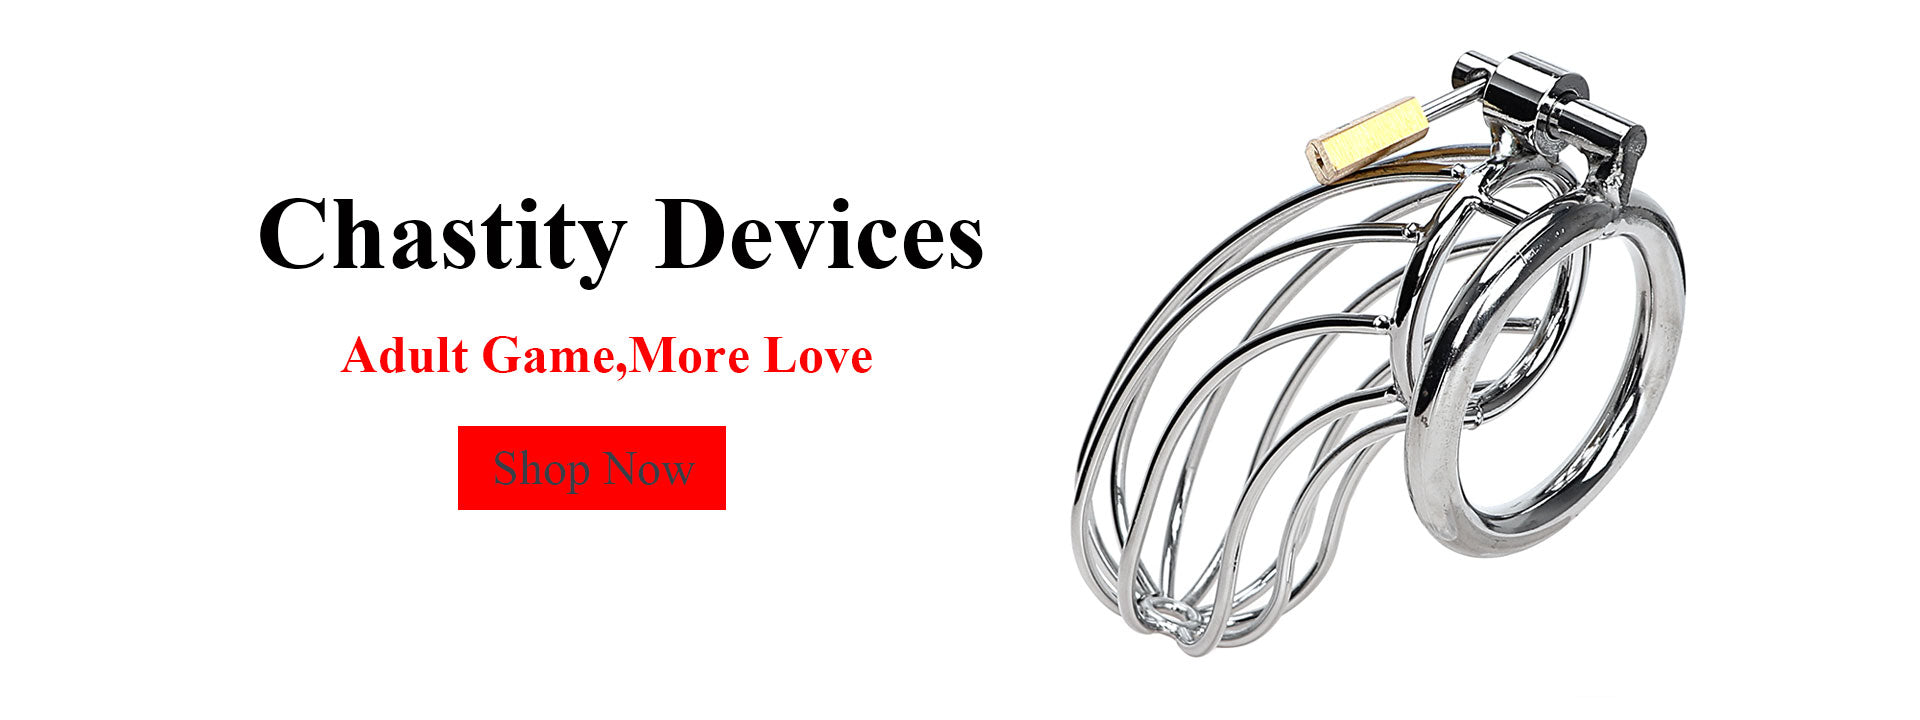 Chastity-Devices-Banner